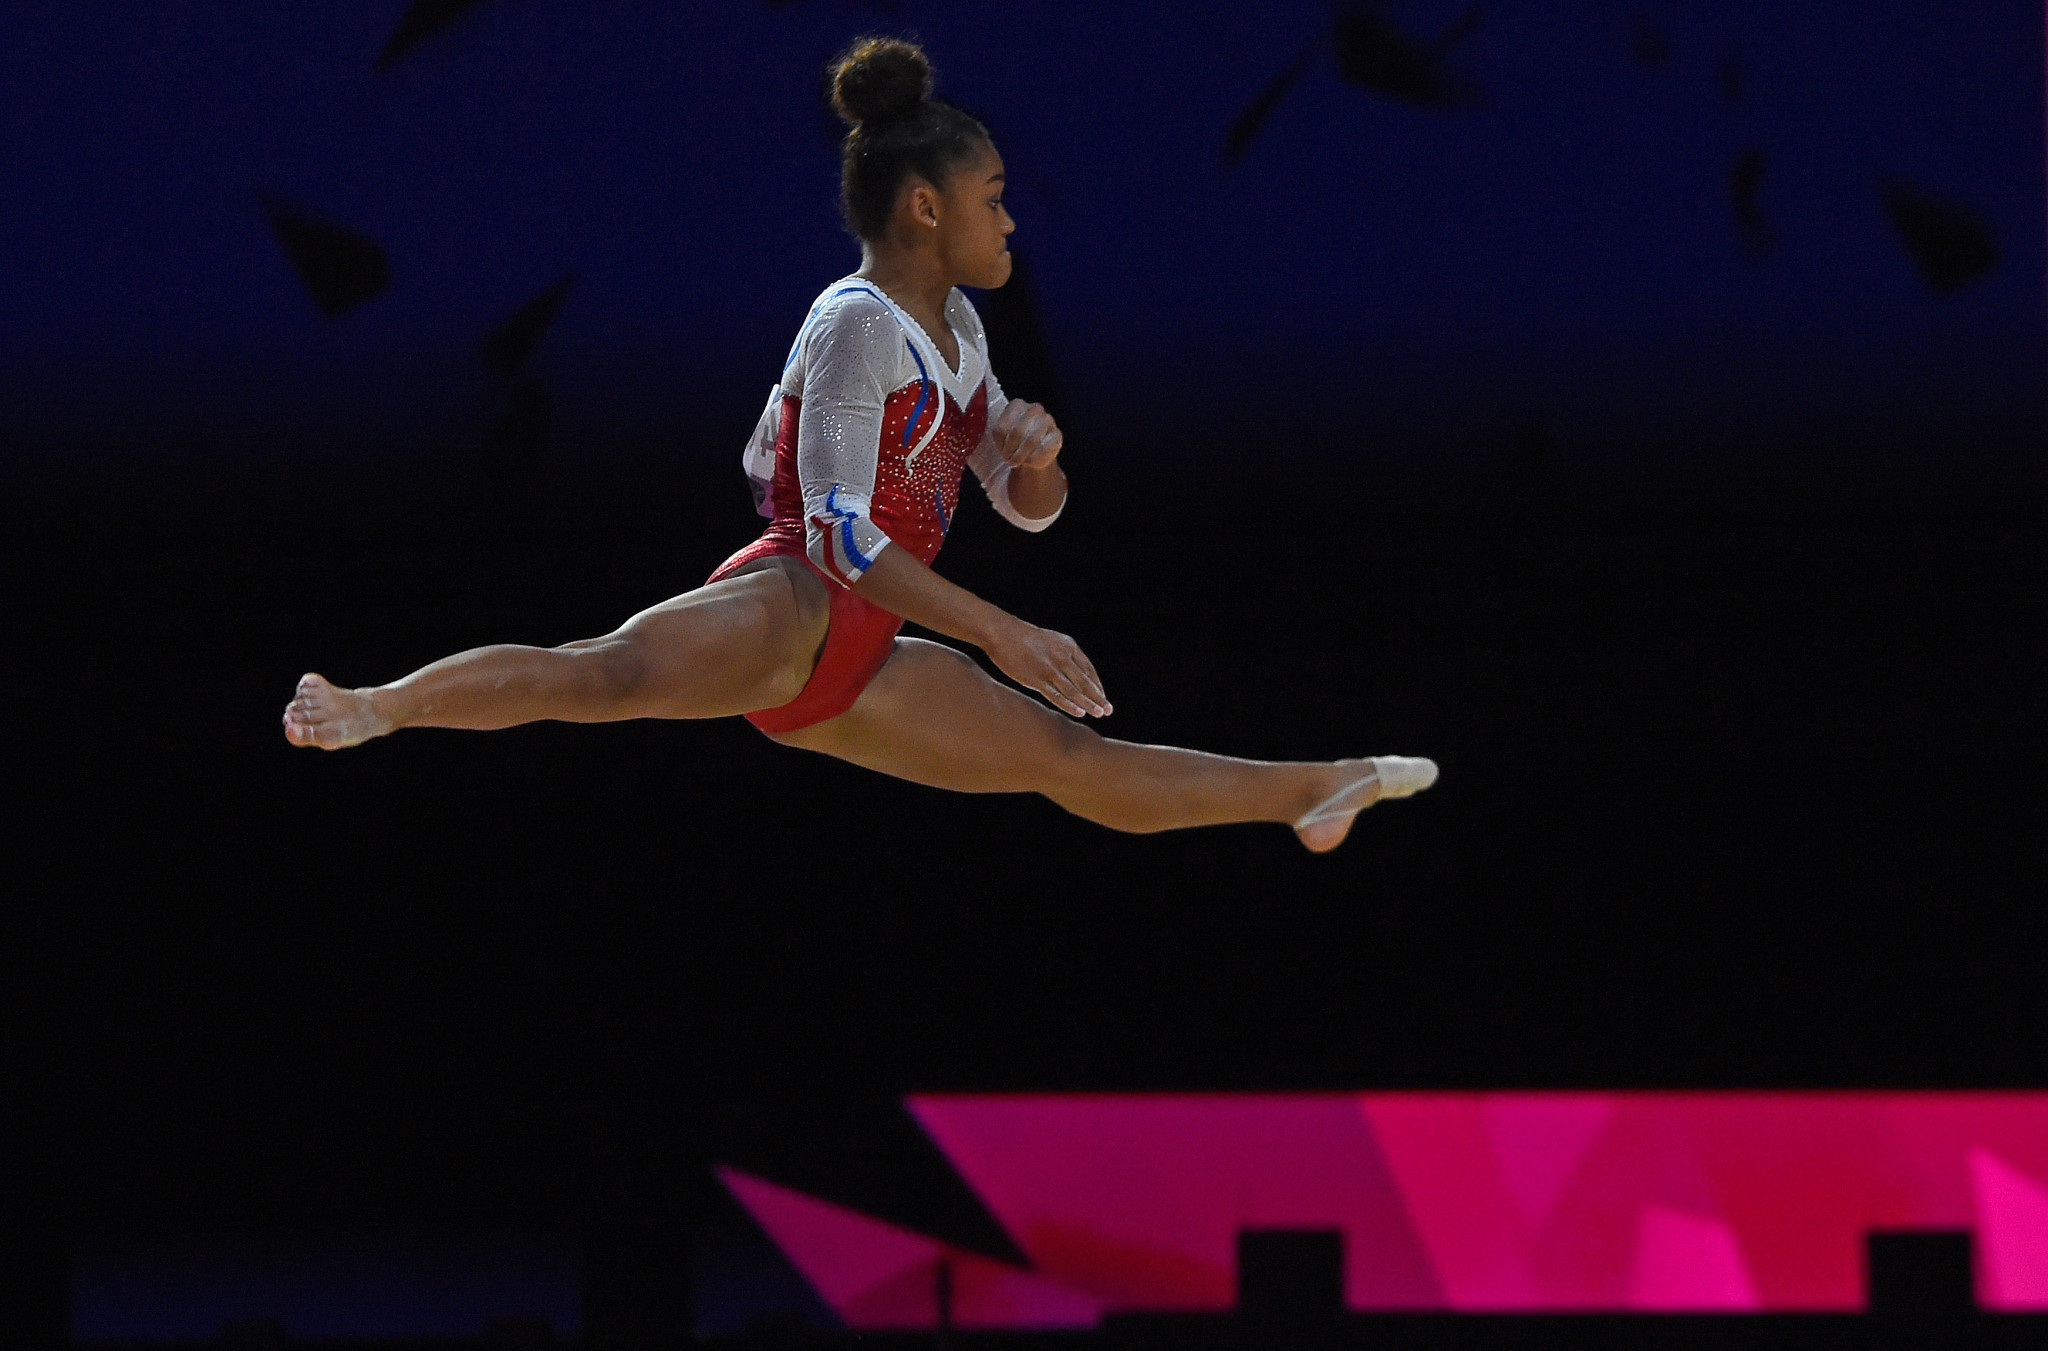 France's Mélanie de Jesus dos Santos came out on top in the floor exercise ©Getty Images